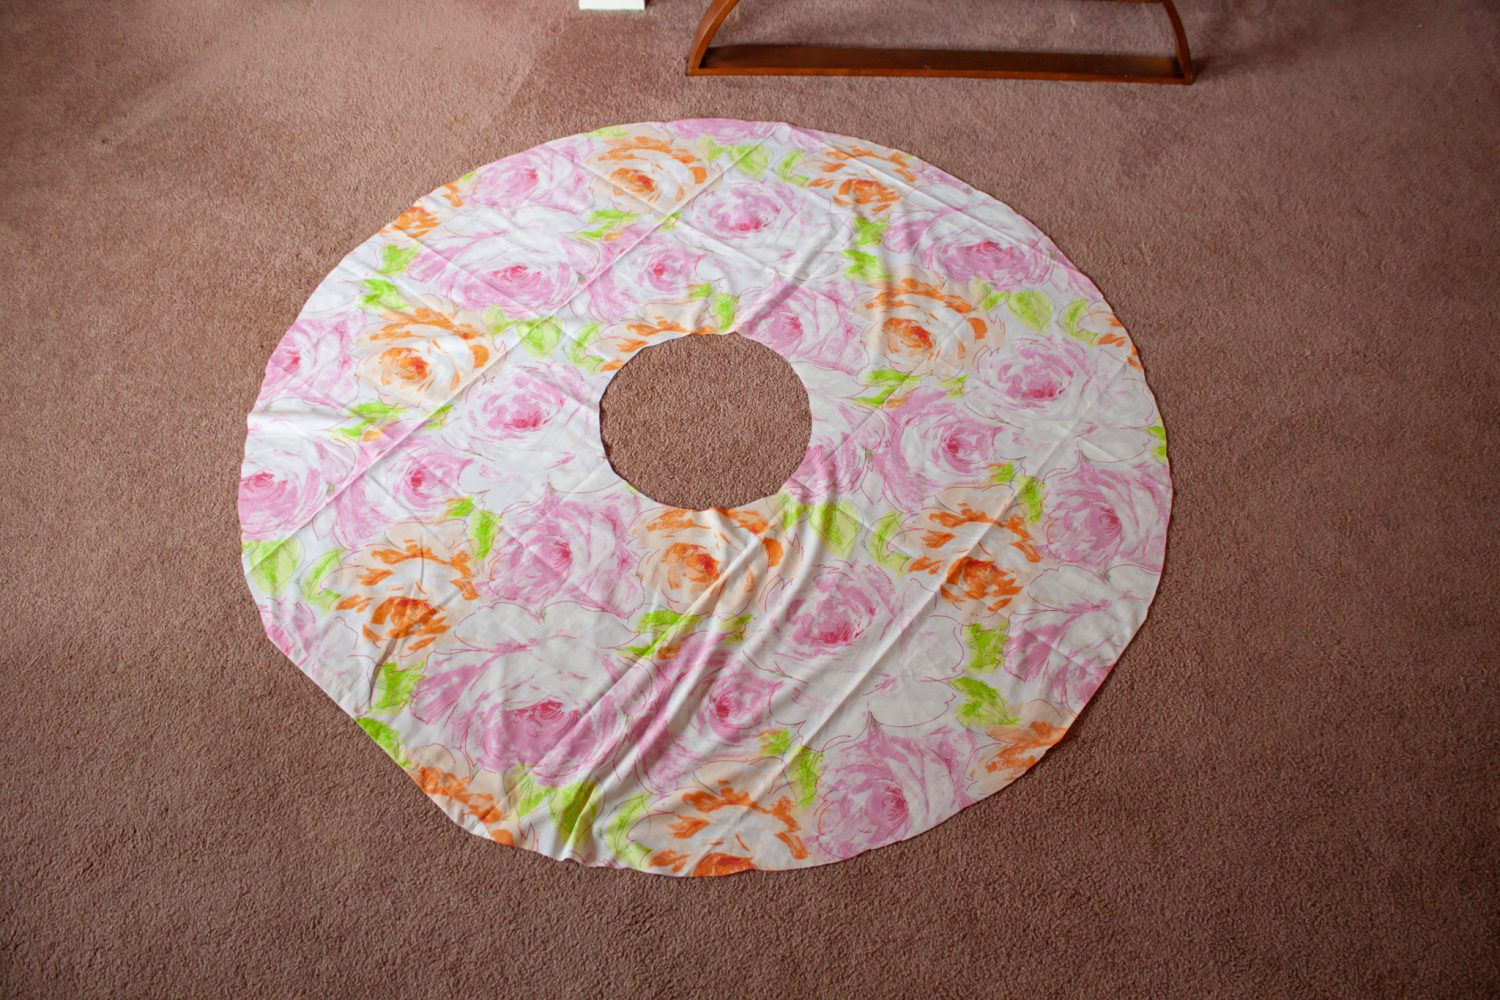 Circle of fabric with circle cut out of middle